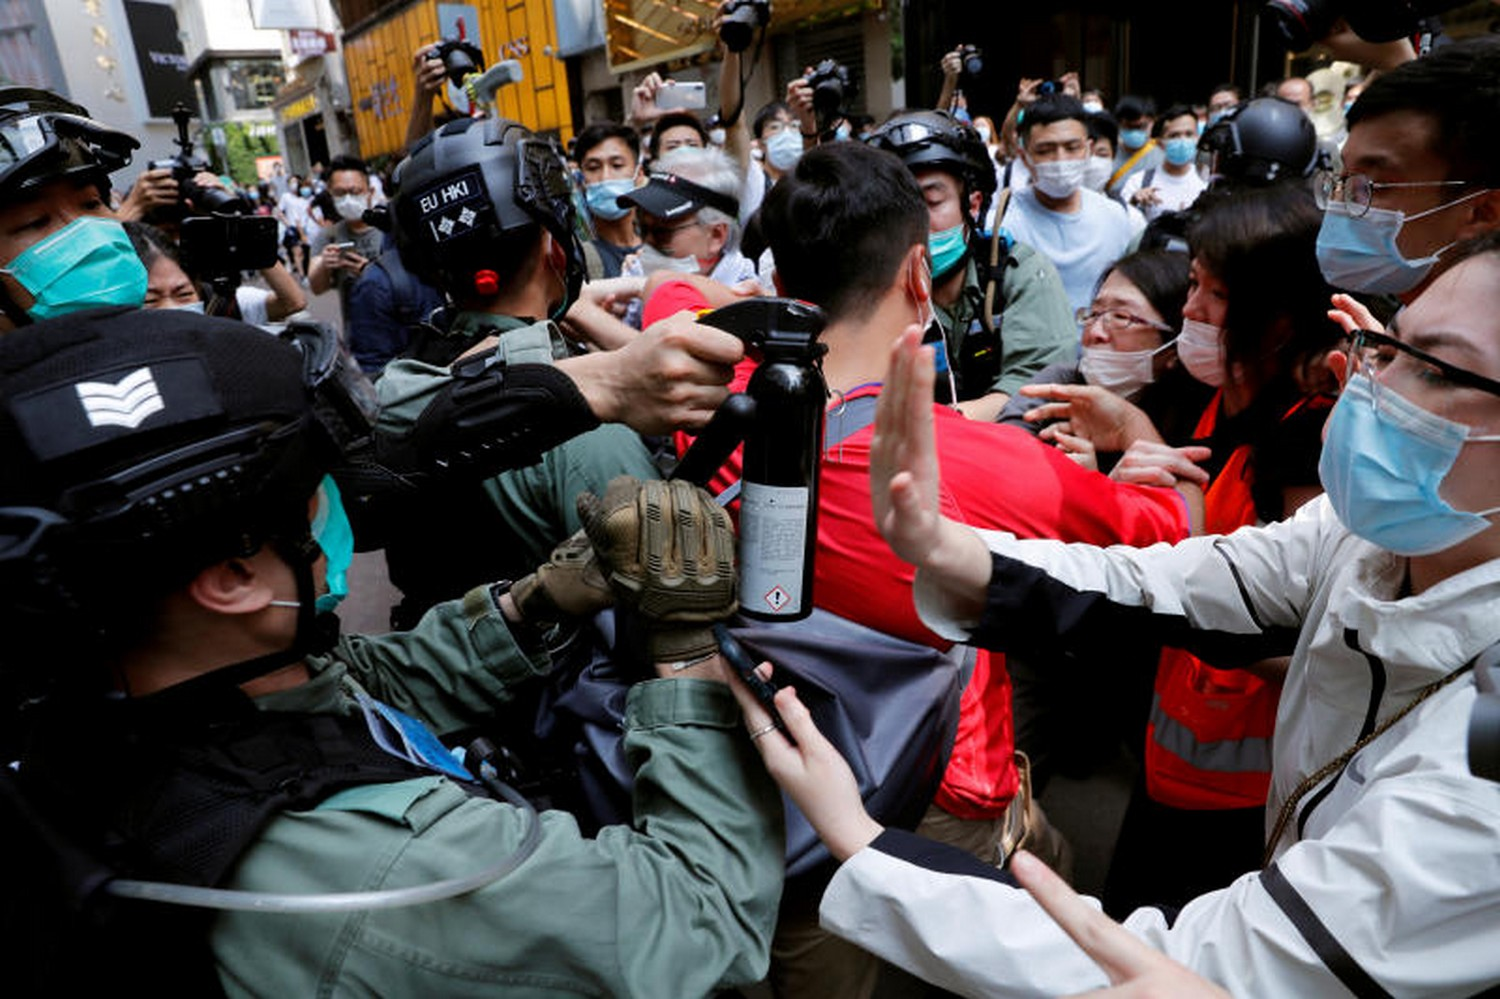 Anti-government demonstrators scuffle with riot police at a lunch time protest during  the second reading of the controversial national anthem bill in Hong Kong on Wednesday. (Photo: Reuters)